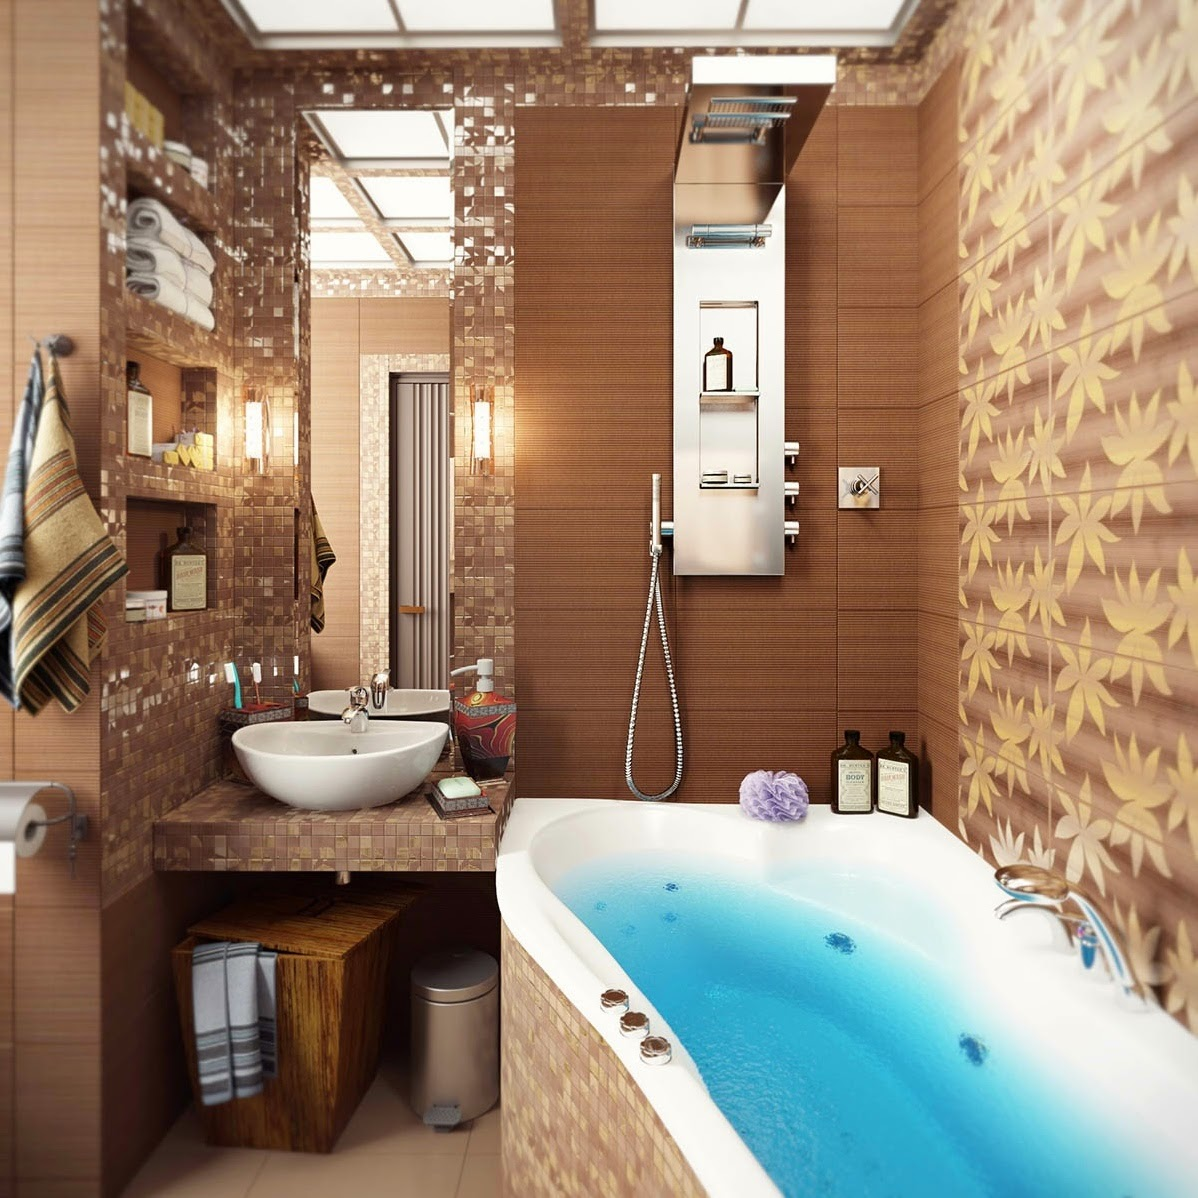 Wallpaper Ideas for Small Bathrooms